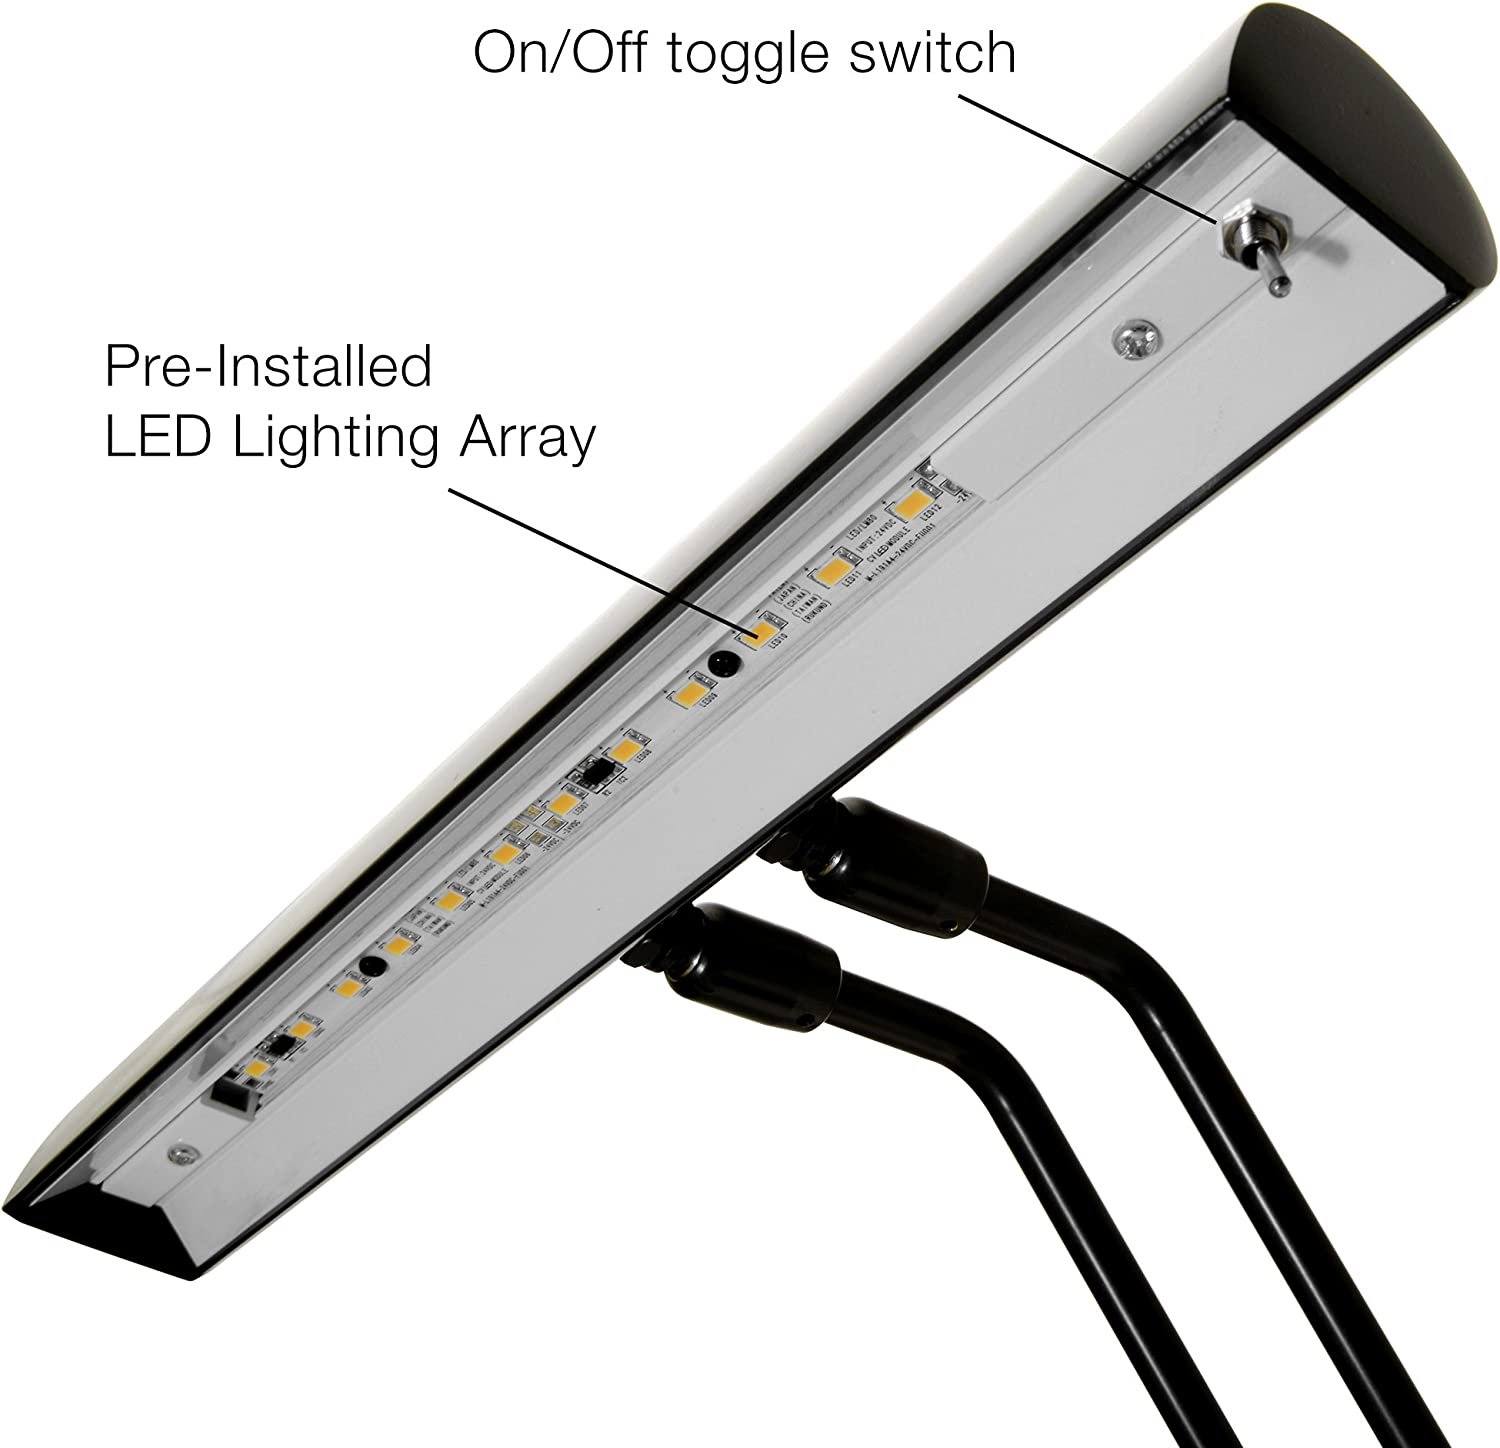 12 LED Piano Desk Lamp with Dimmer - Oil Rubbed Bronze Bronze